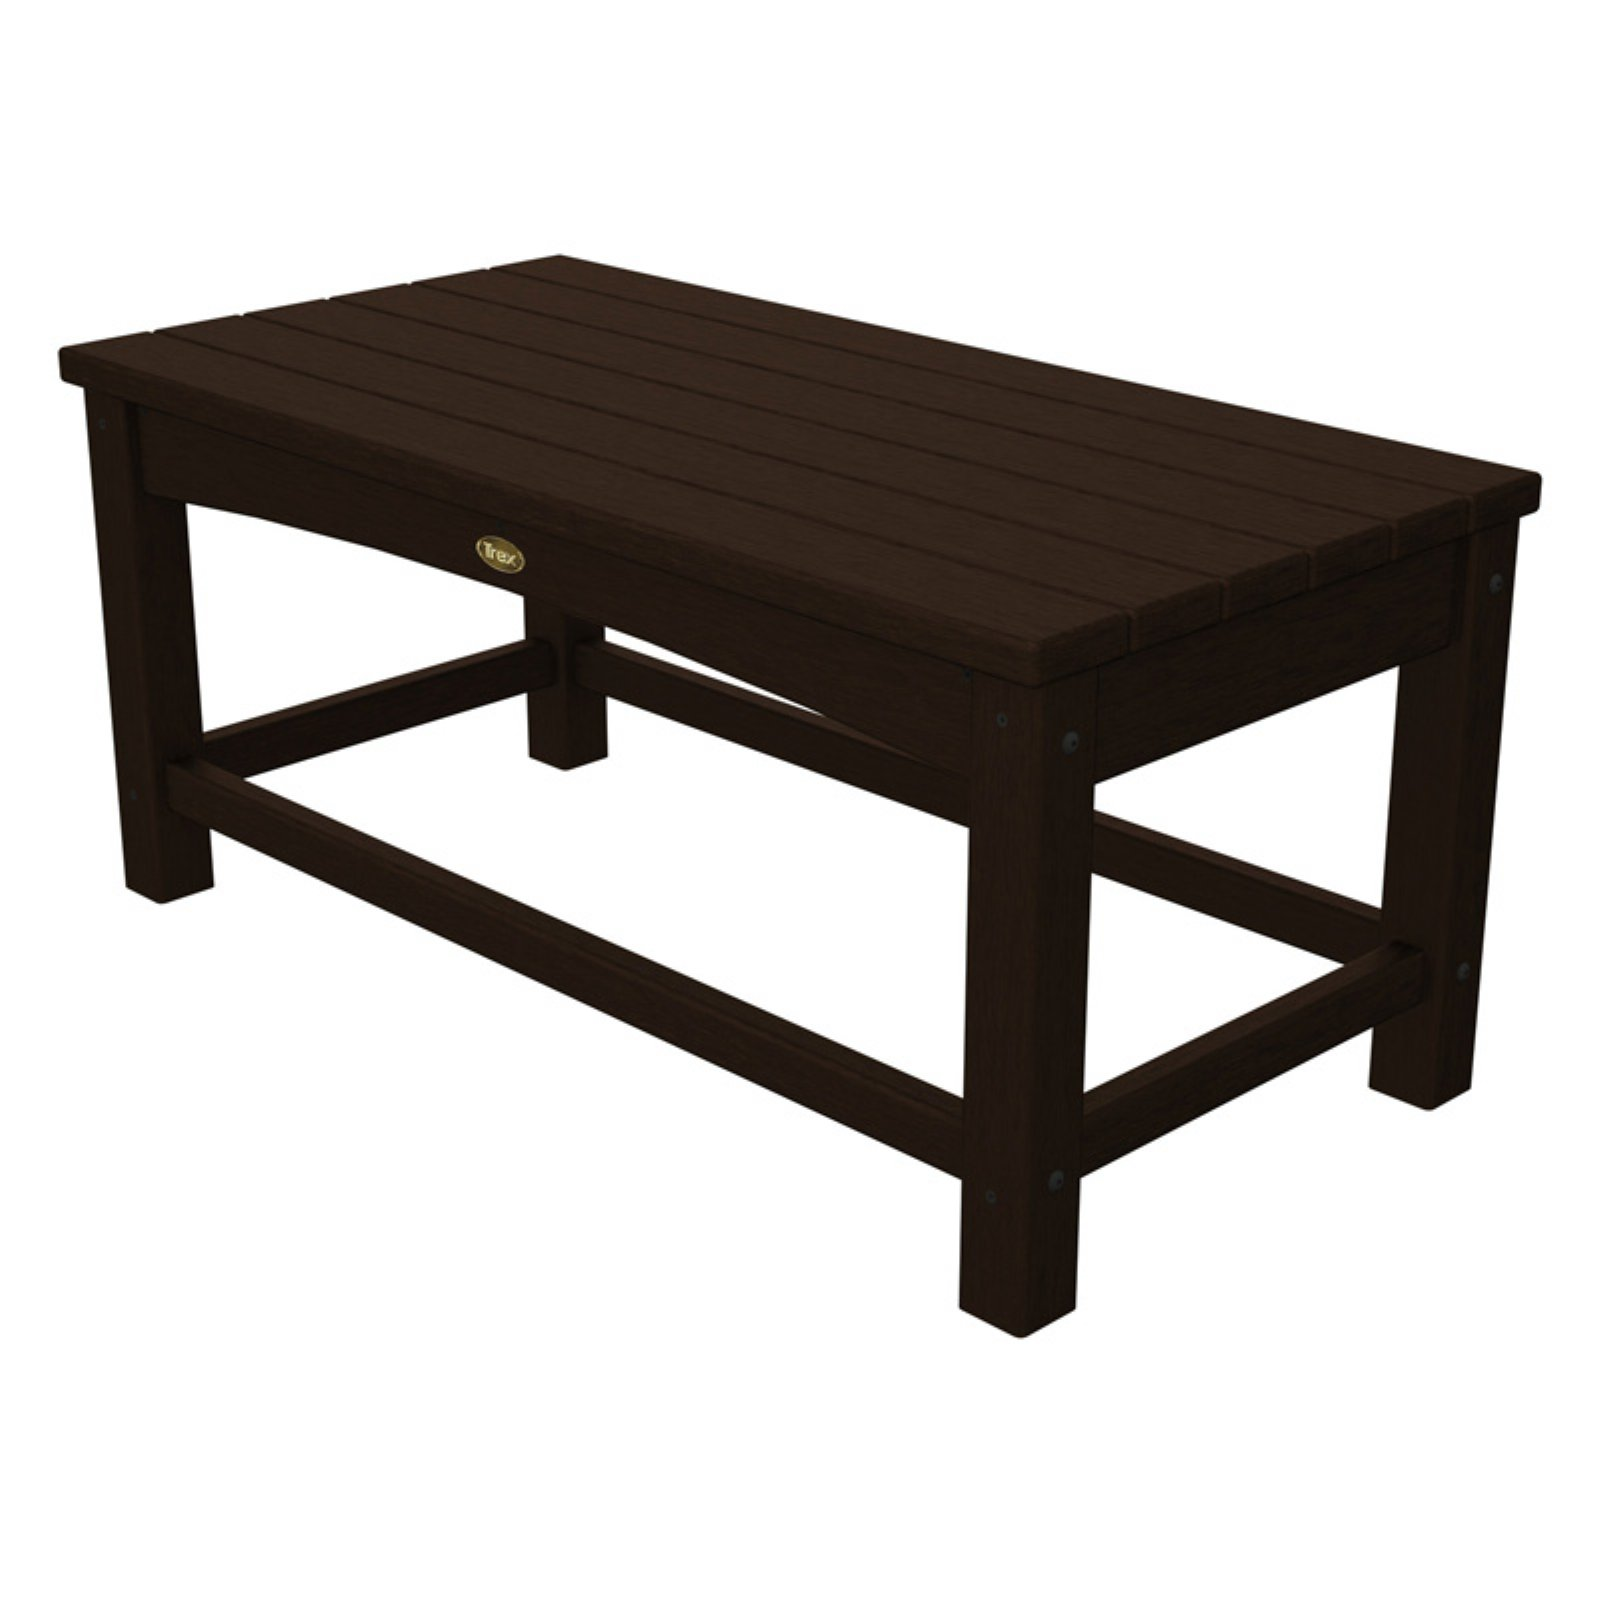 Trex Outdoor Furniture Recycled Plastic Rockport Club Coffee Table by Poly-Wood